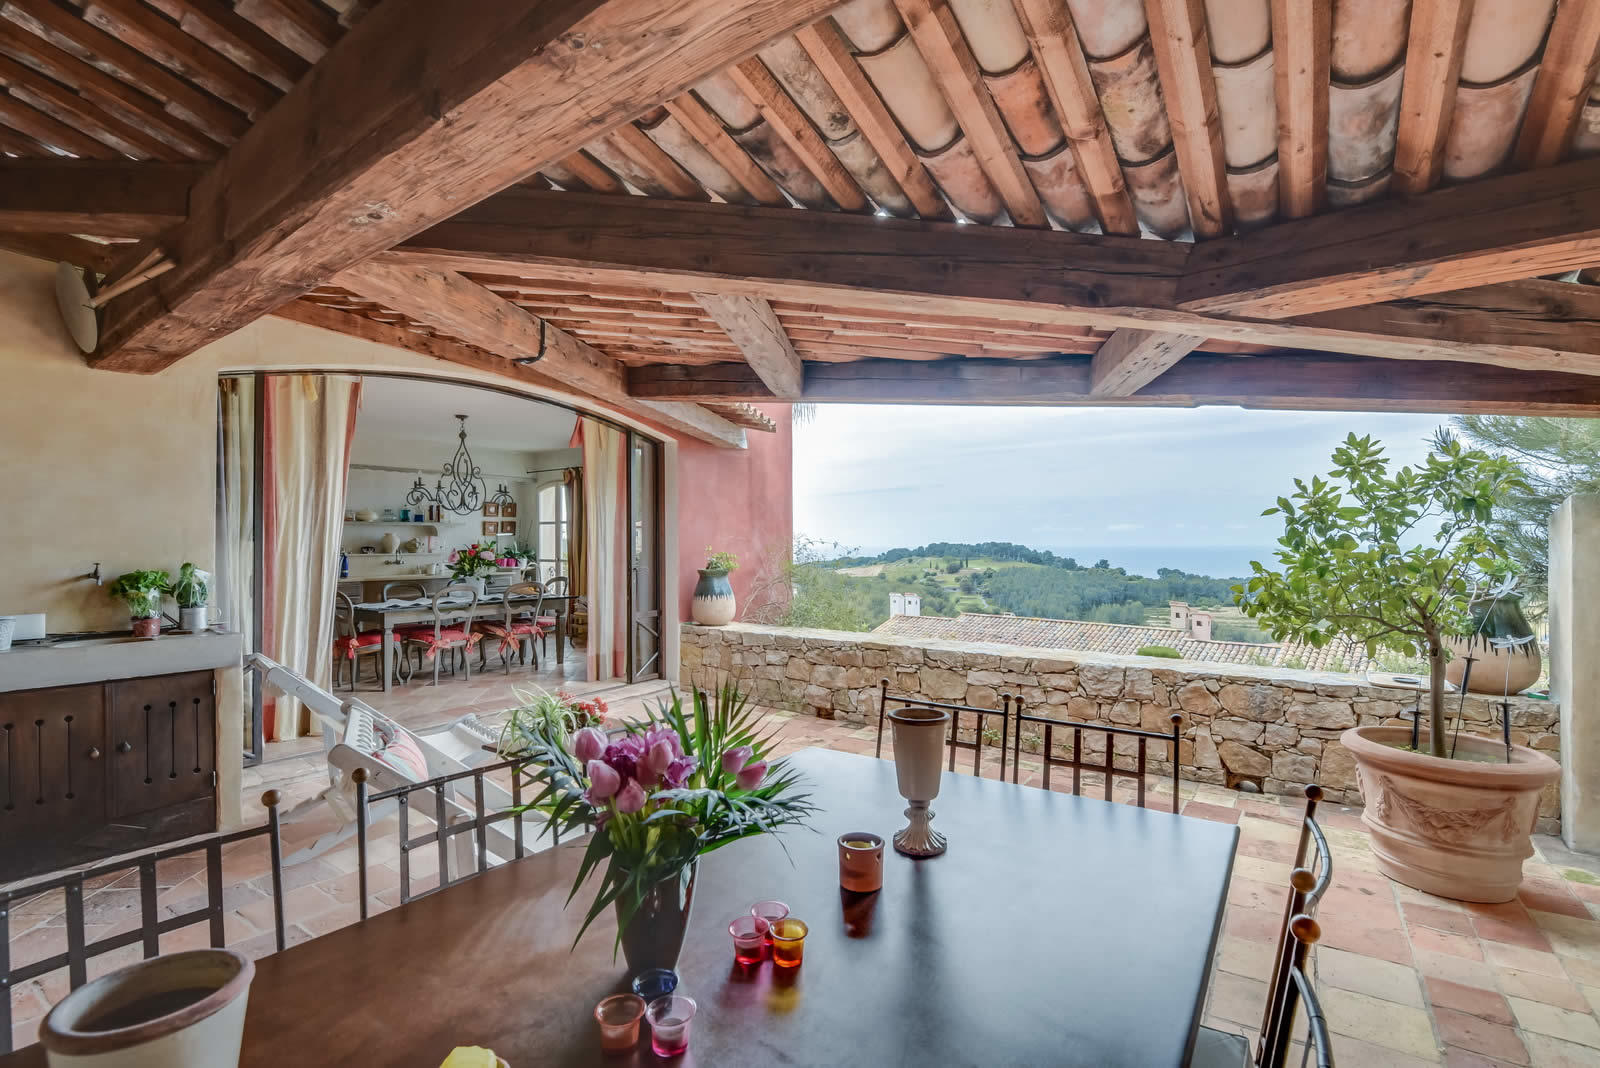 Location Bandol Airbnb Cave A Pizza Saint Cyr Sur Mer Amazing Panoramic View Of